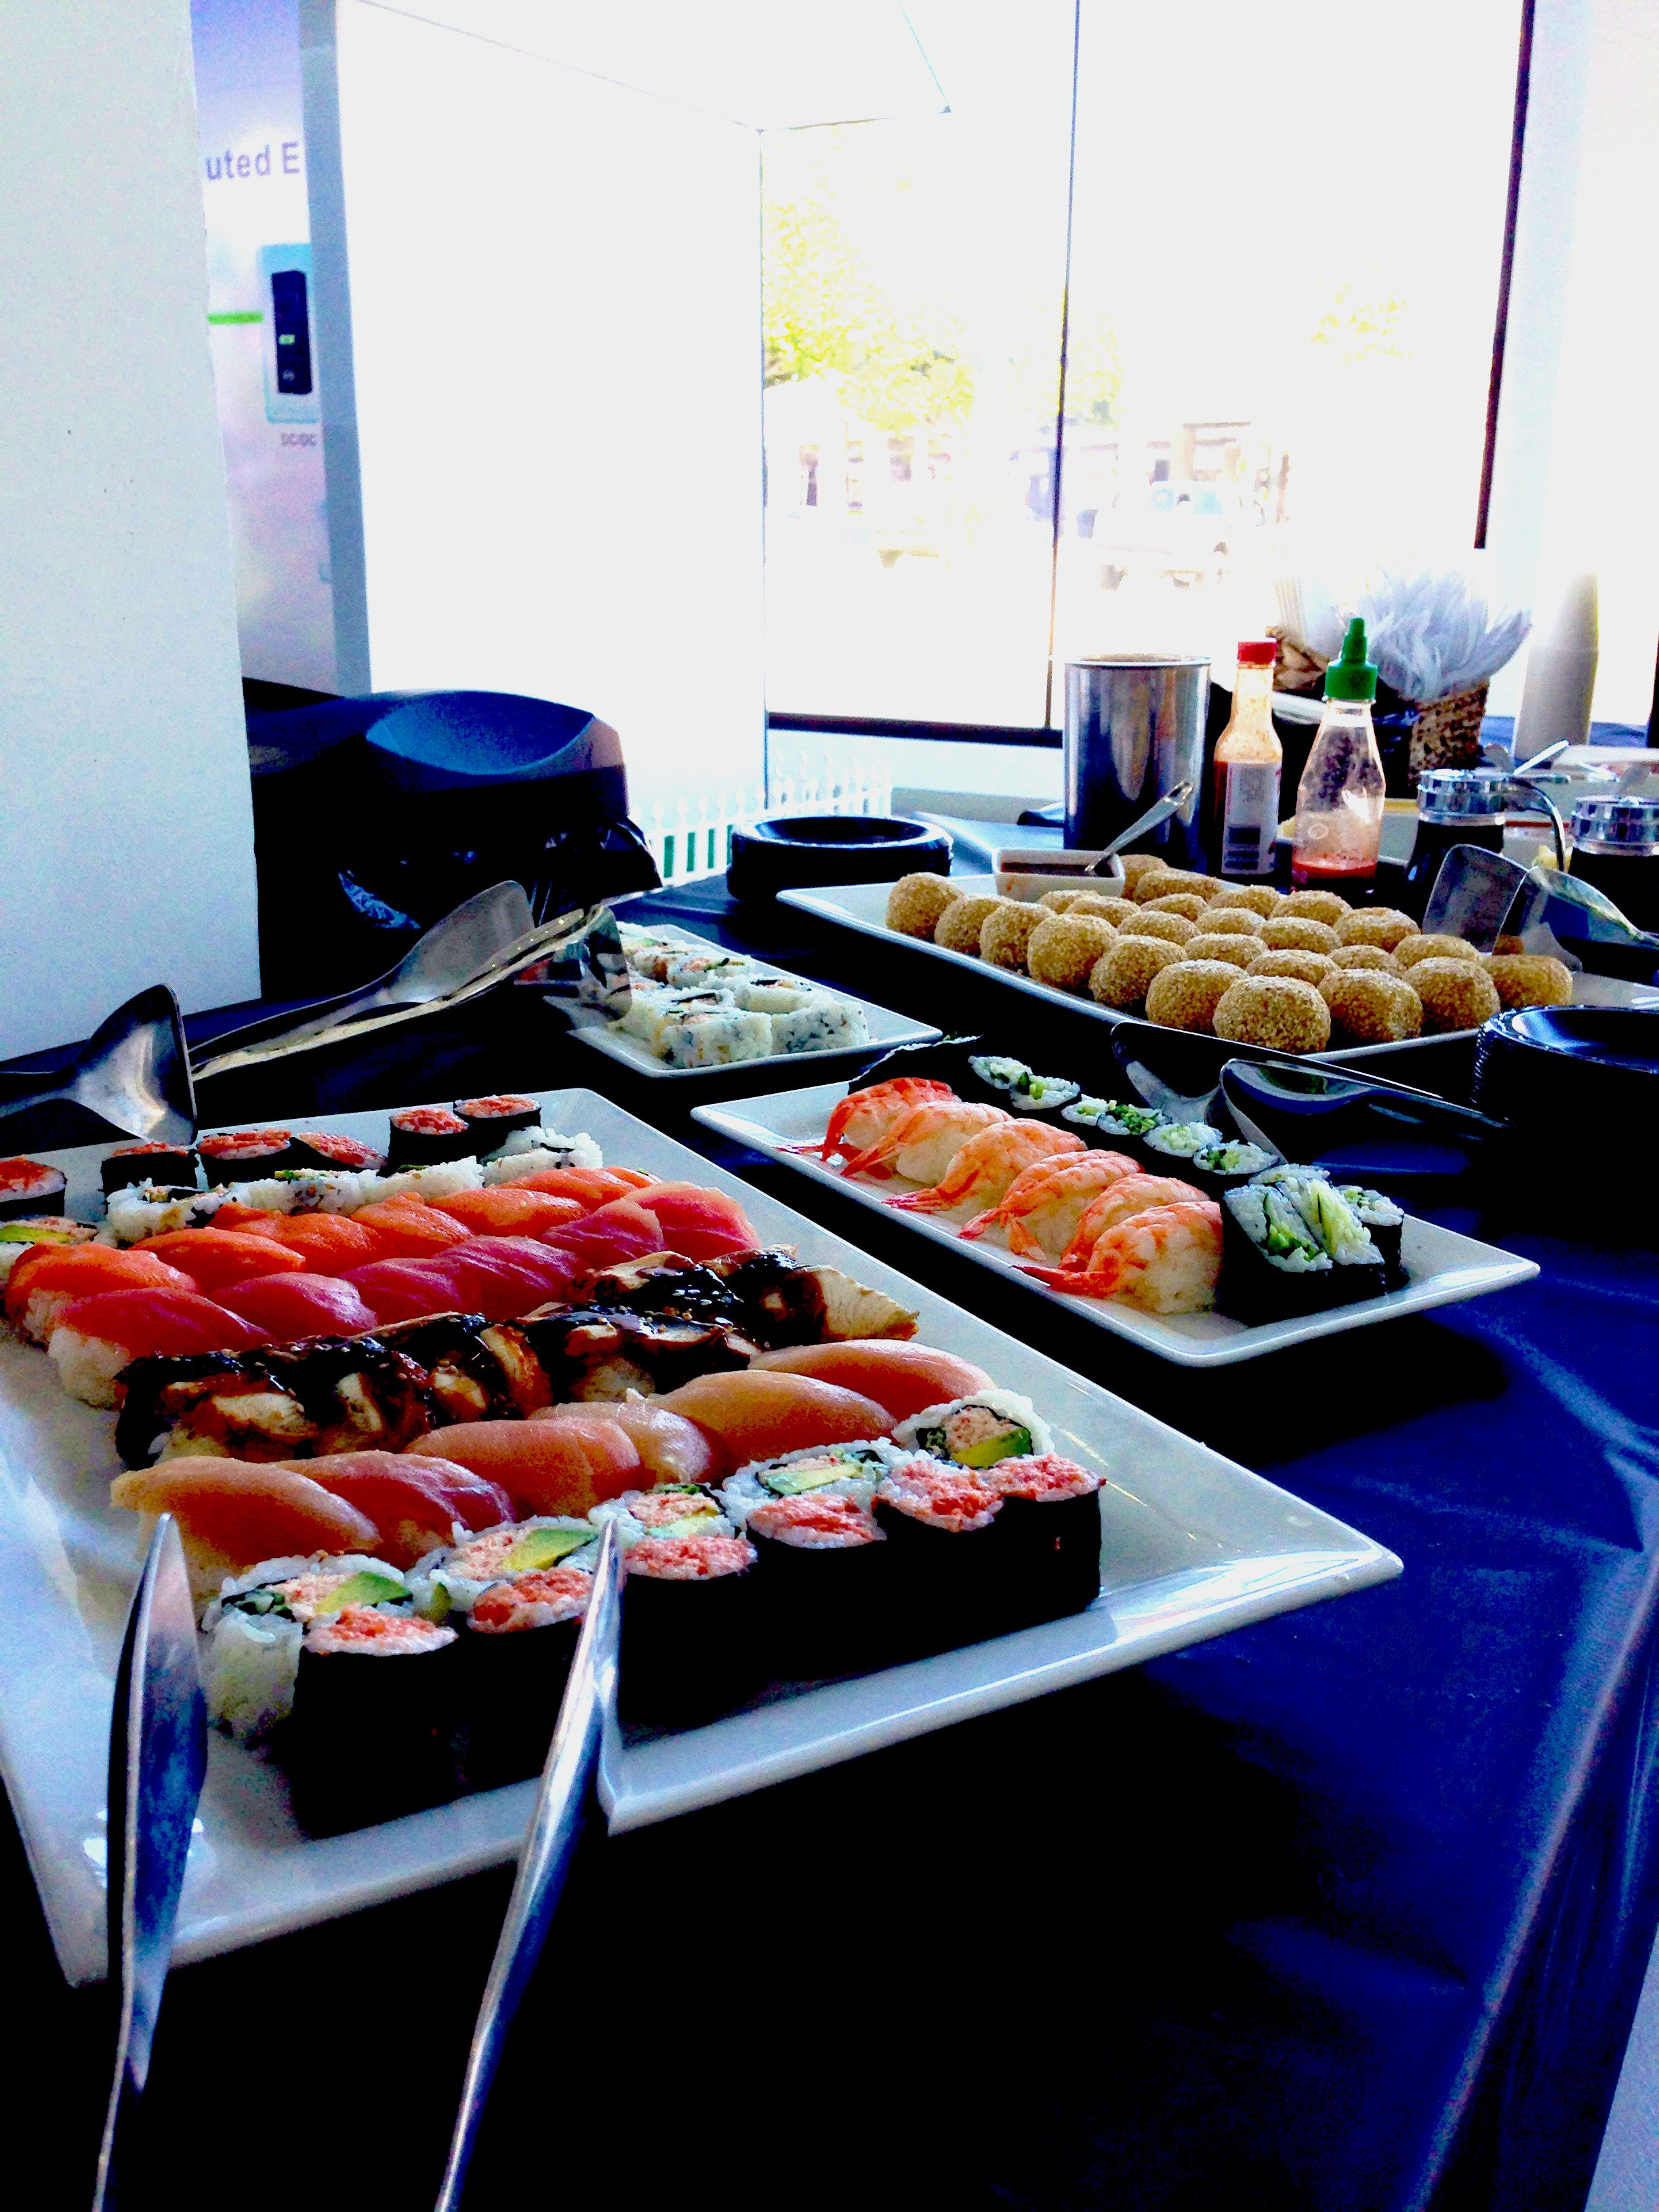 Spice up your next event with sushi platters! #riseandshinecatering #event #sushi #losangeles #foodpics #monday #appetizer #foodblogger